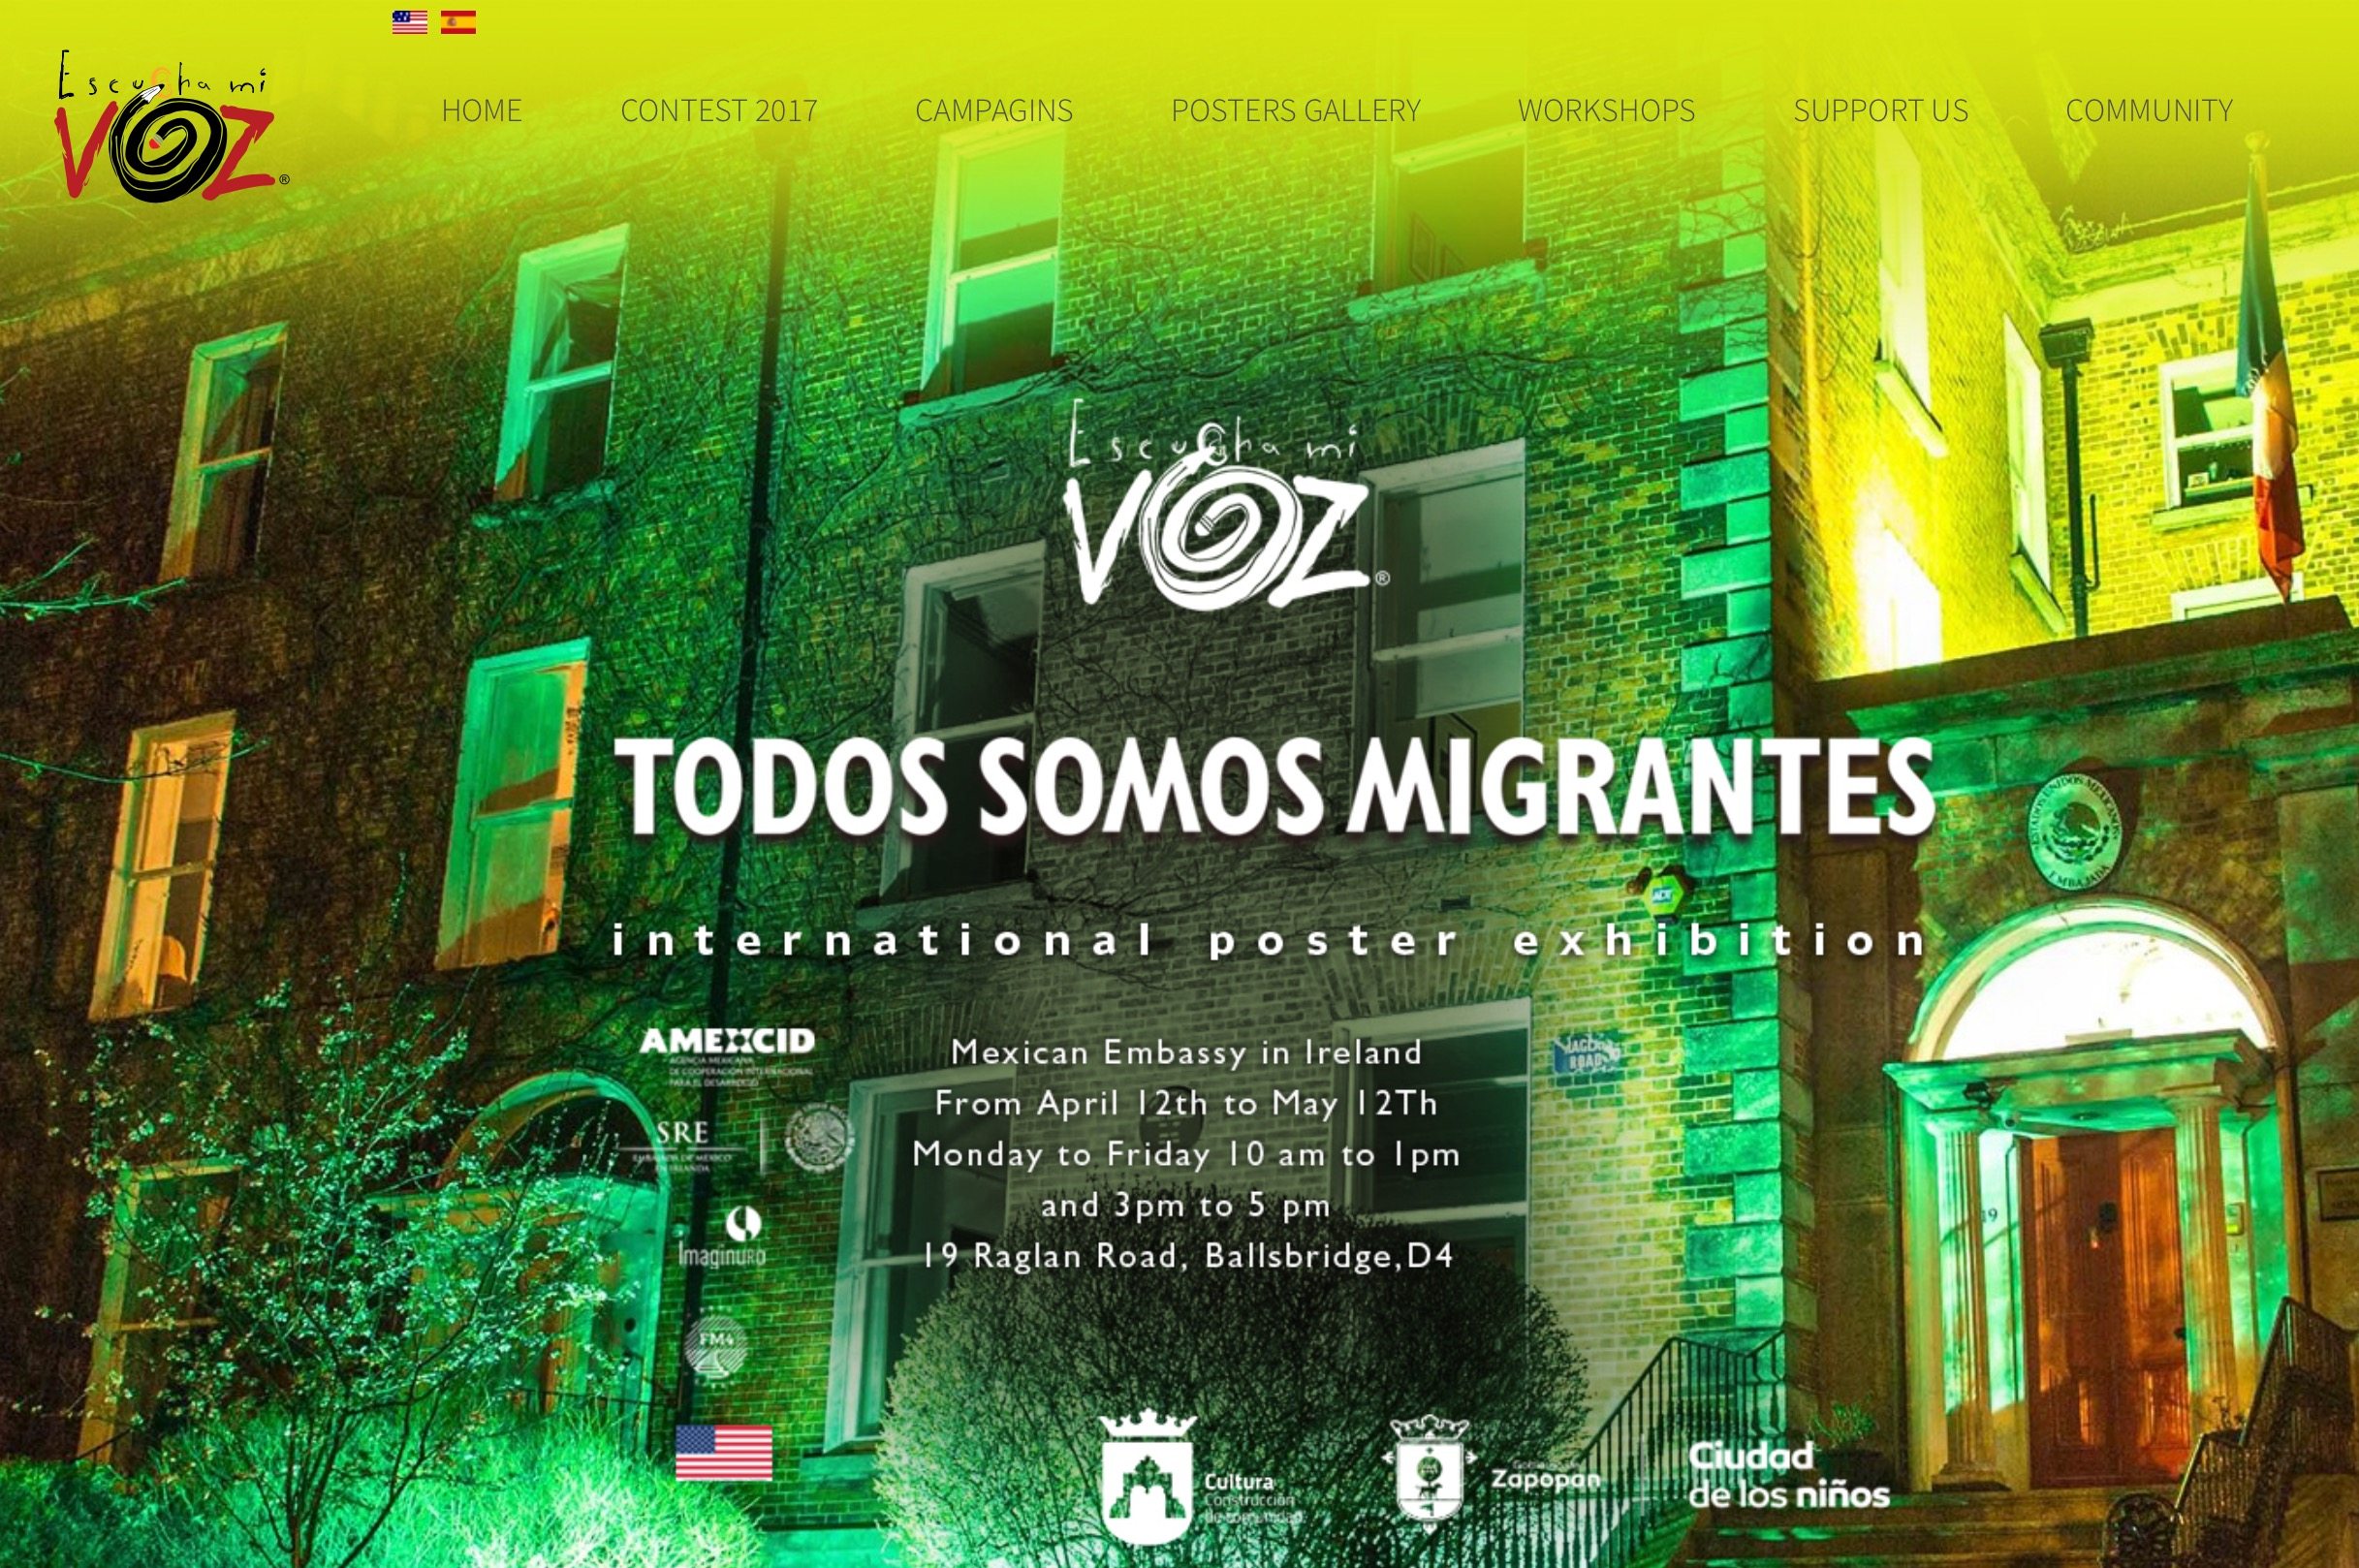 We Are All MIgrants – Todos Somos Migrantes